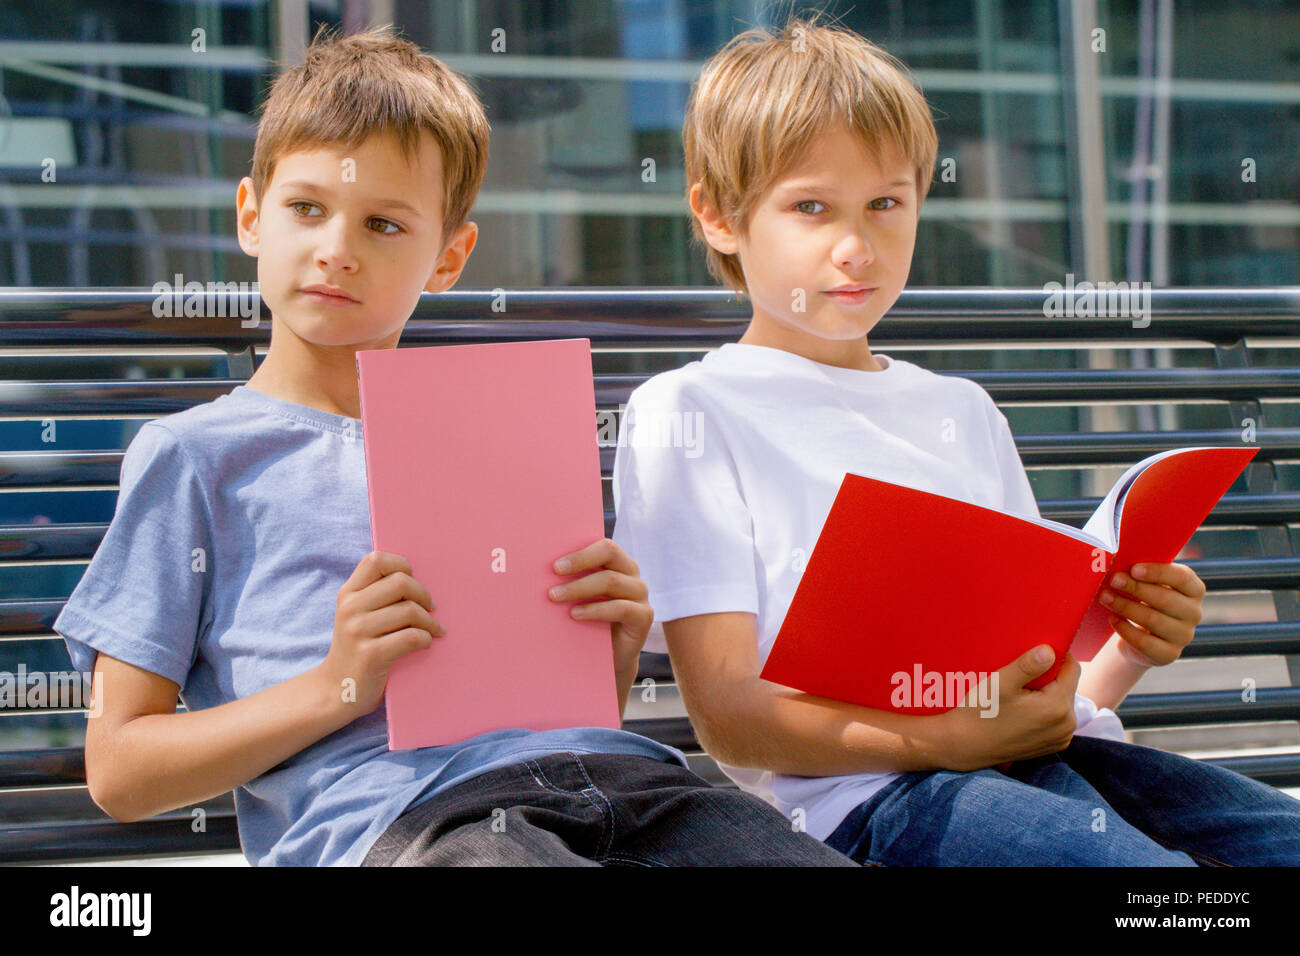 Boys doing homework outdoors. Back to school concept. - Stock Image